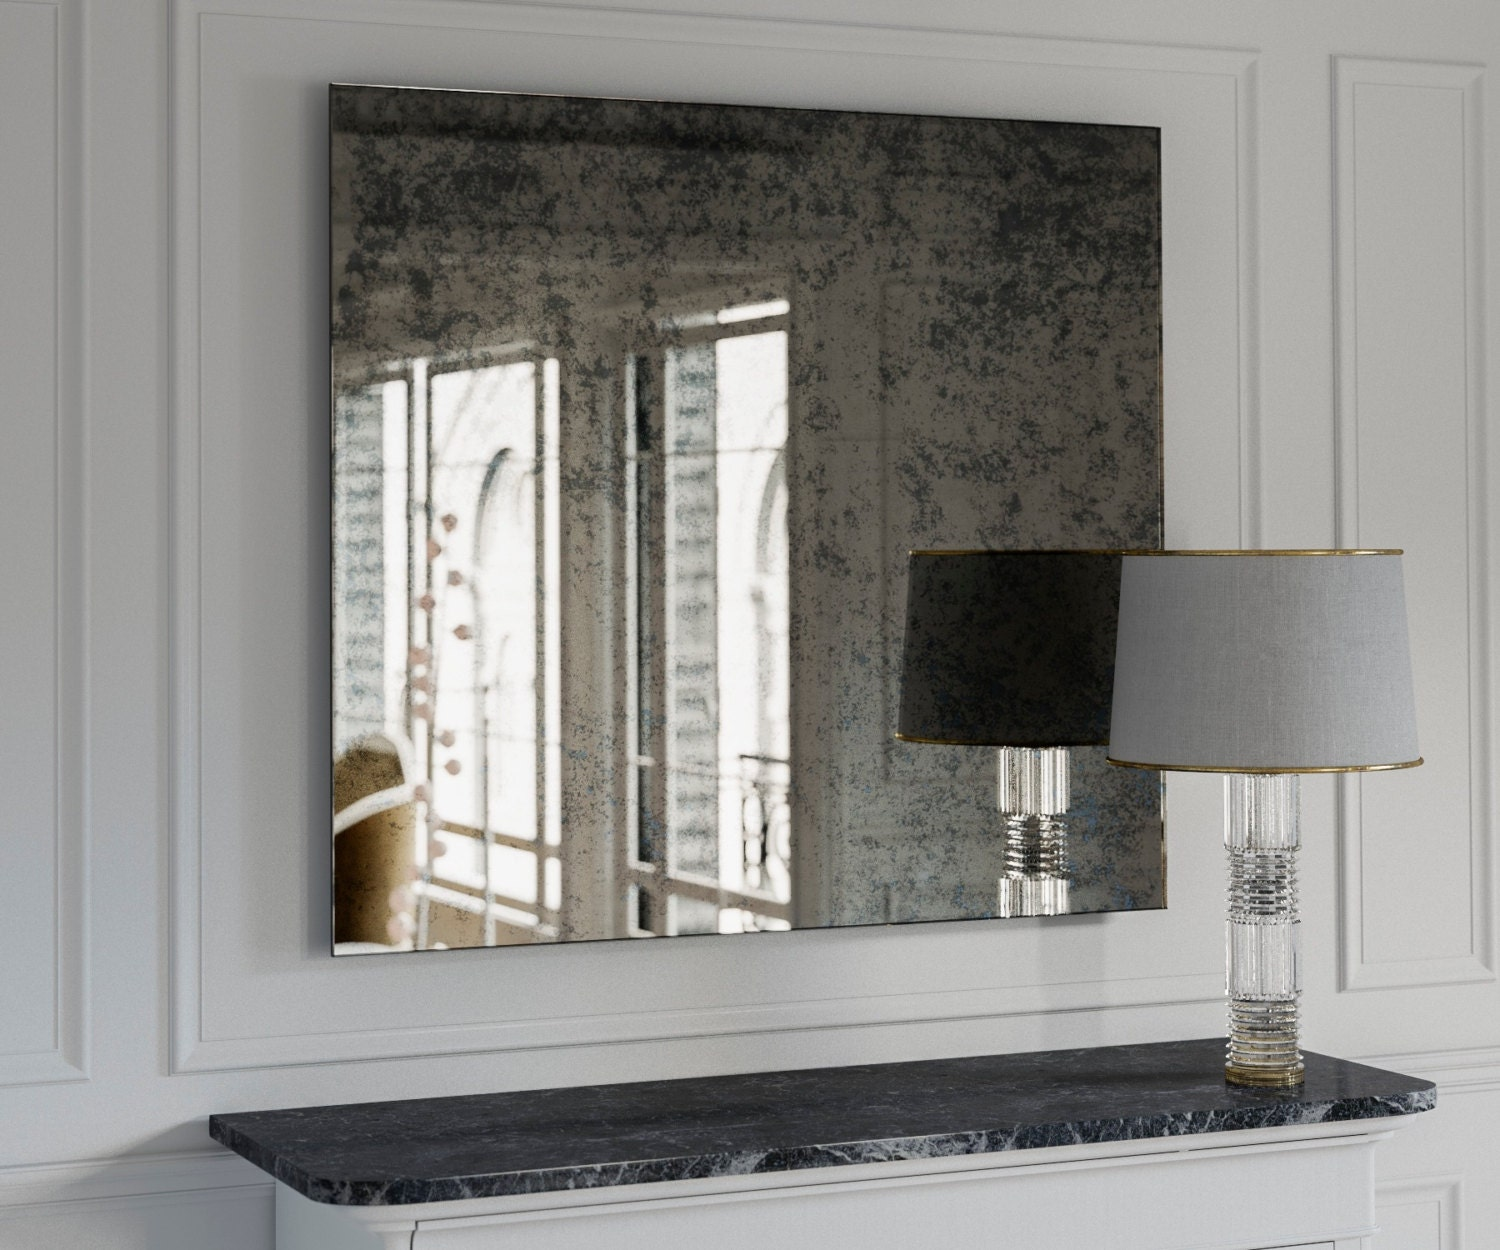 The Coveteur Antique Mirror Walls: Antique Mirror. Large Wall Mirror. Decorative Wall Mirror Made